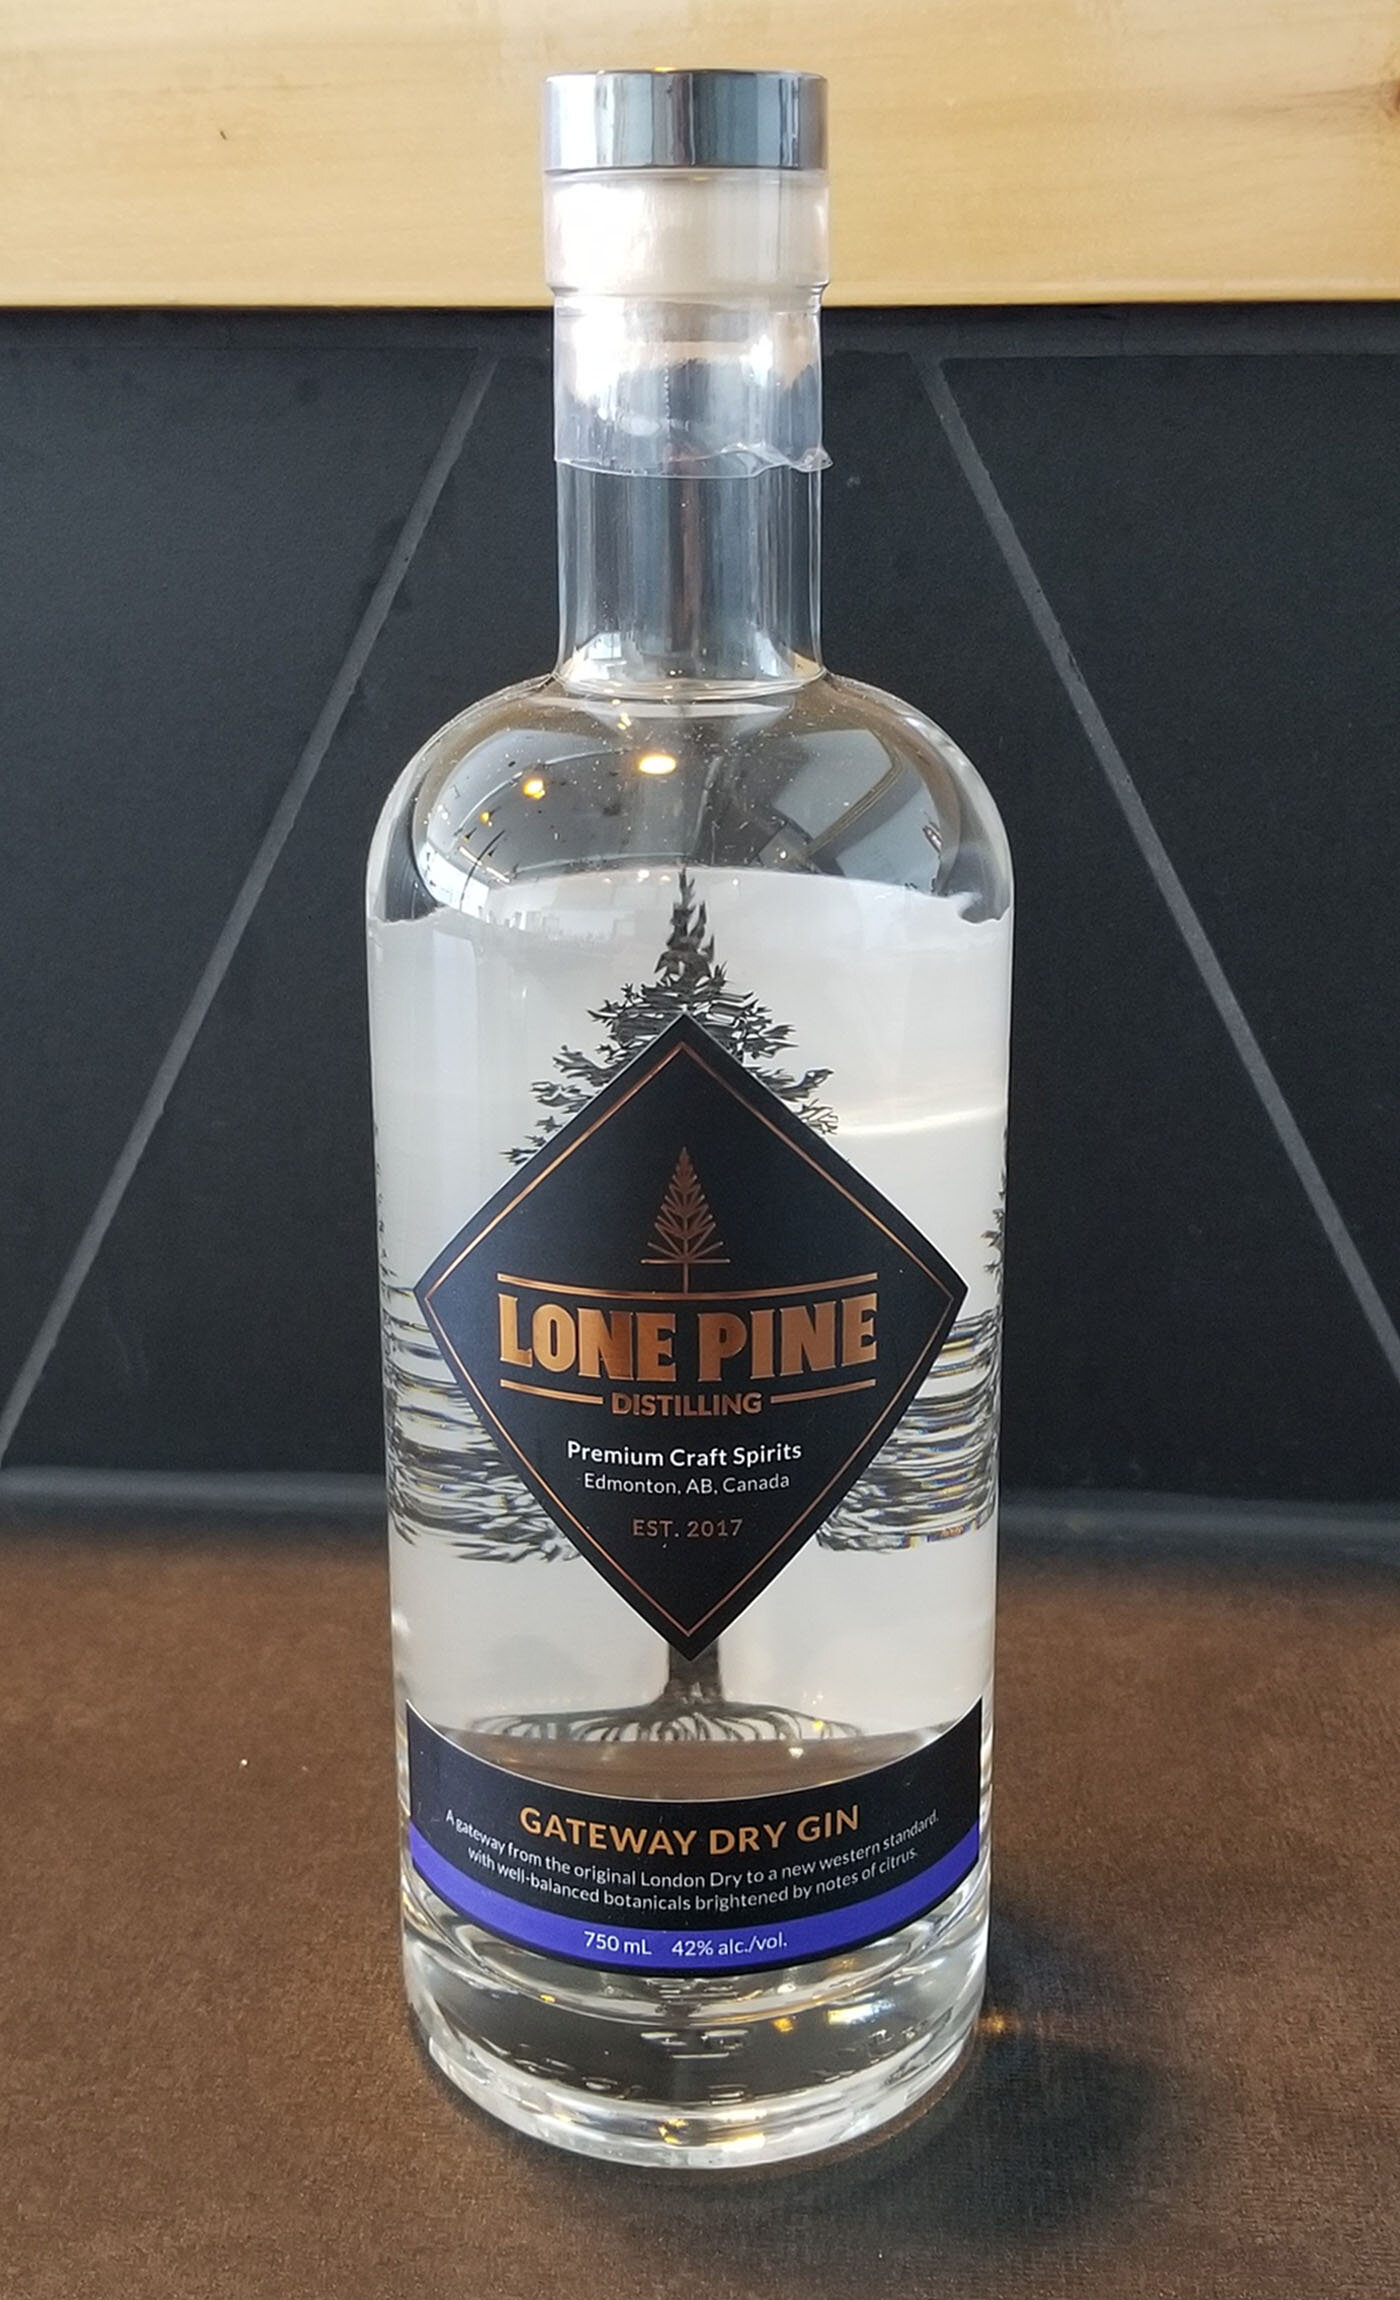 Image courtesy of lone pine distilling.